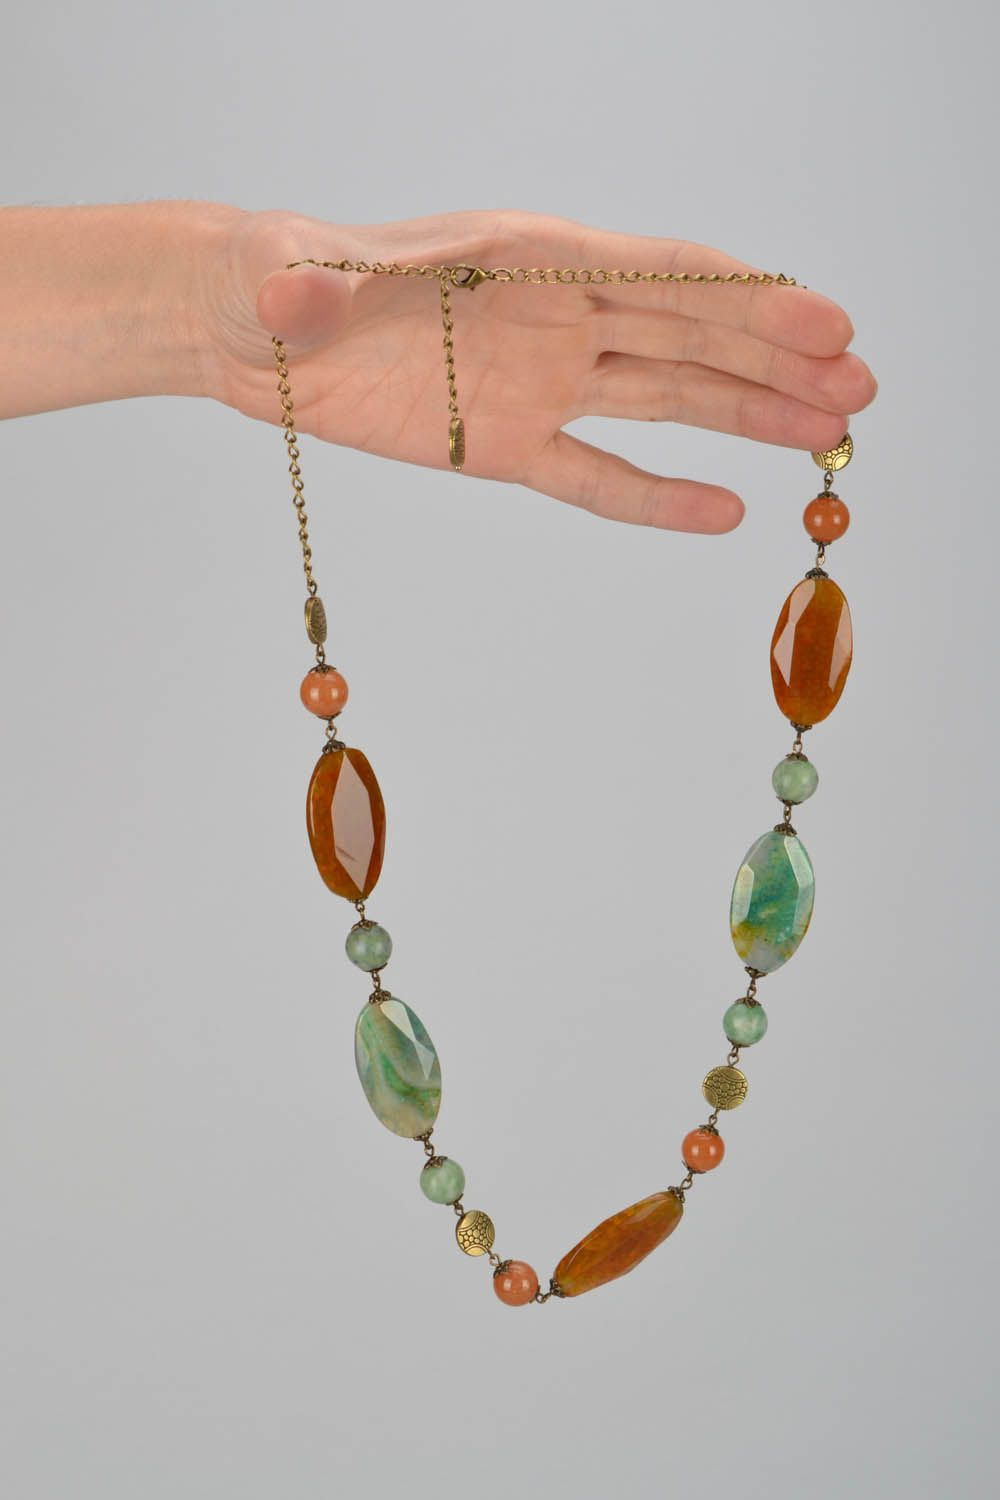 Beaded necklace made of natural stones Autumn photo 2